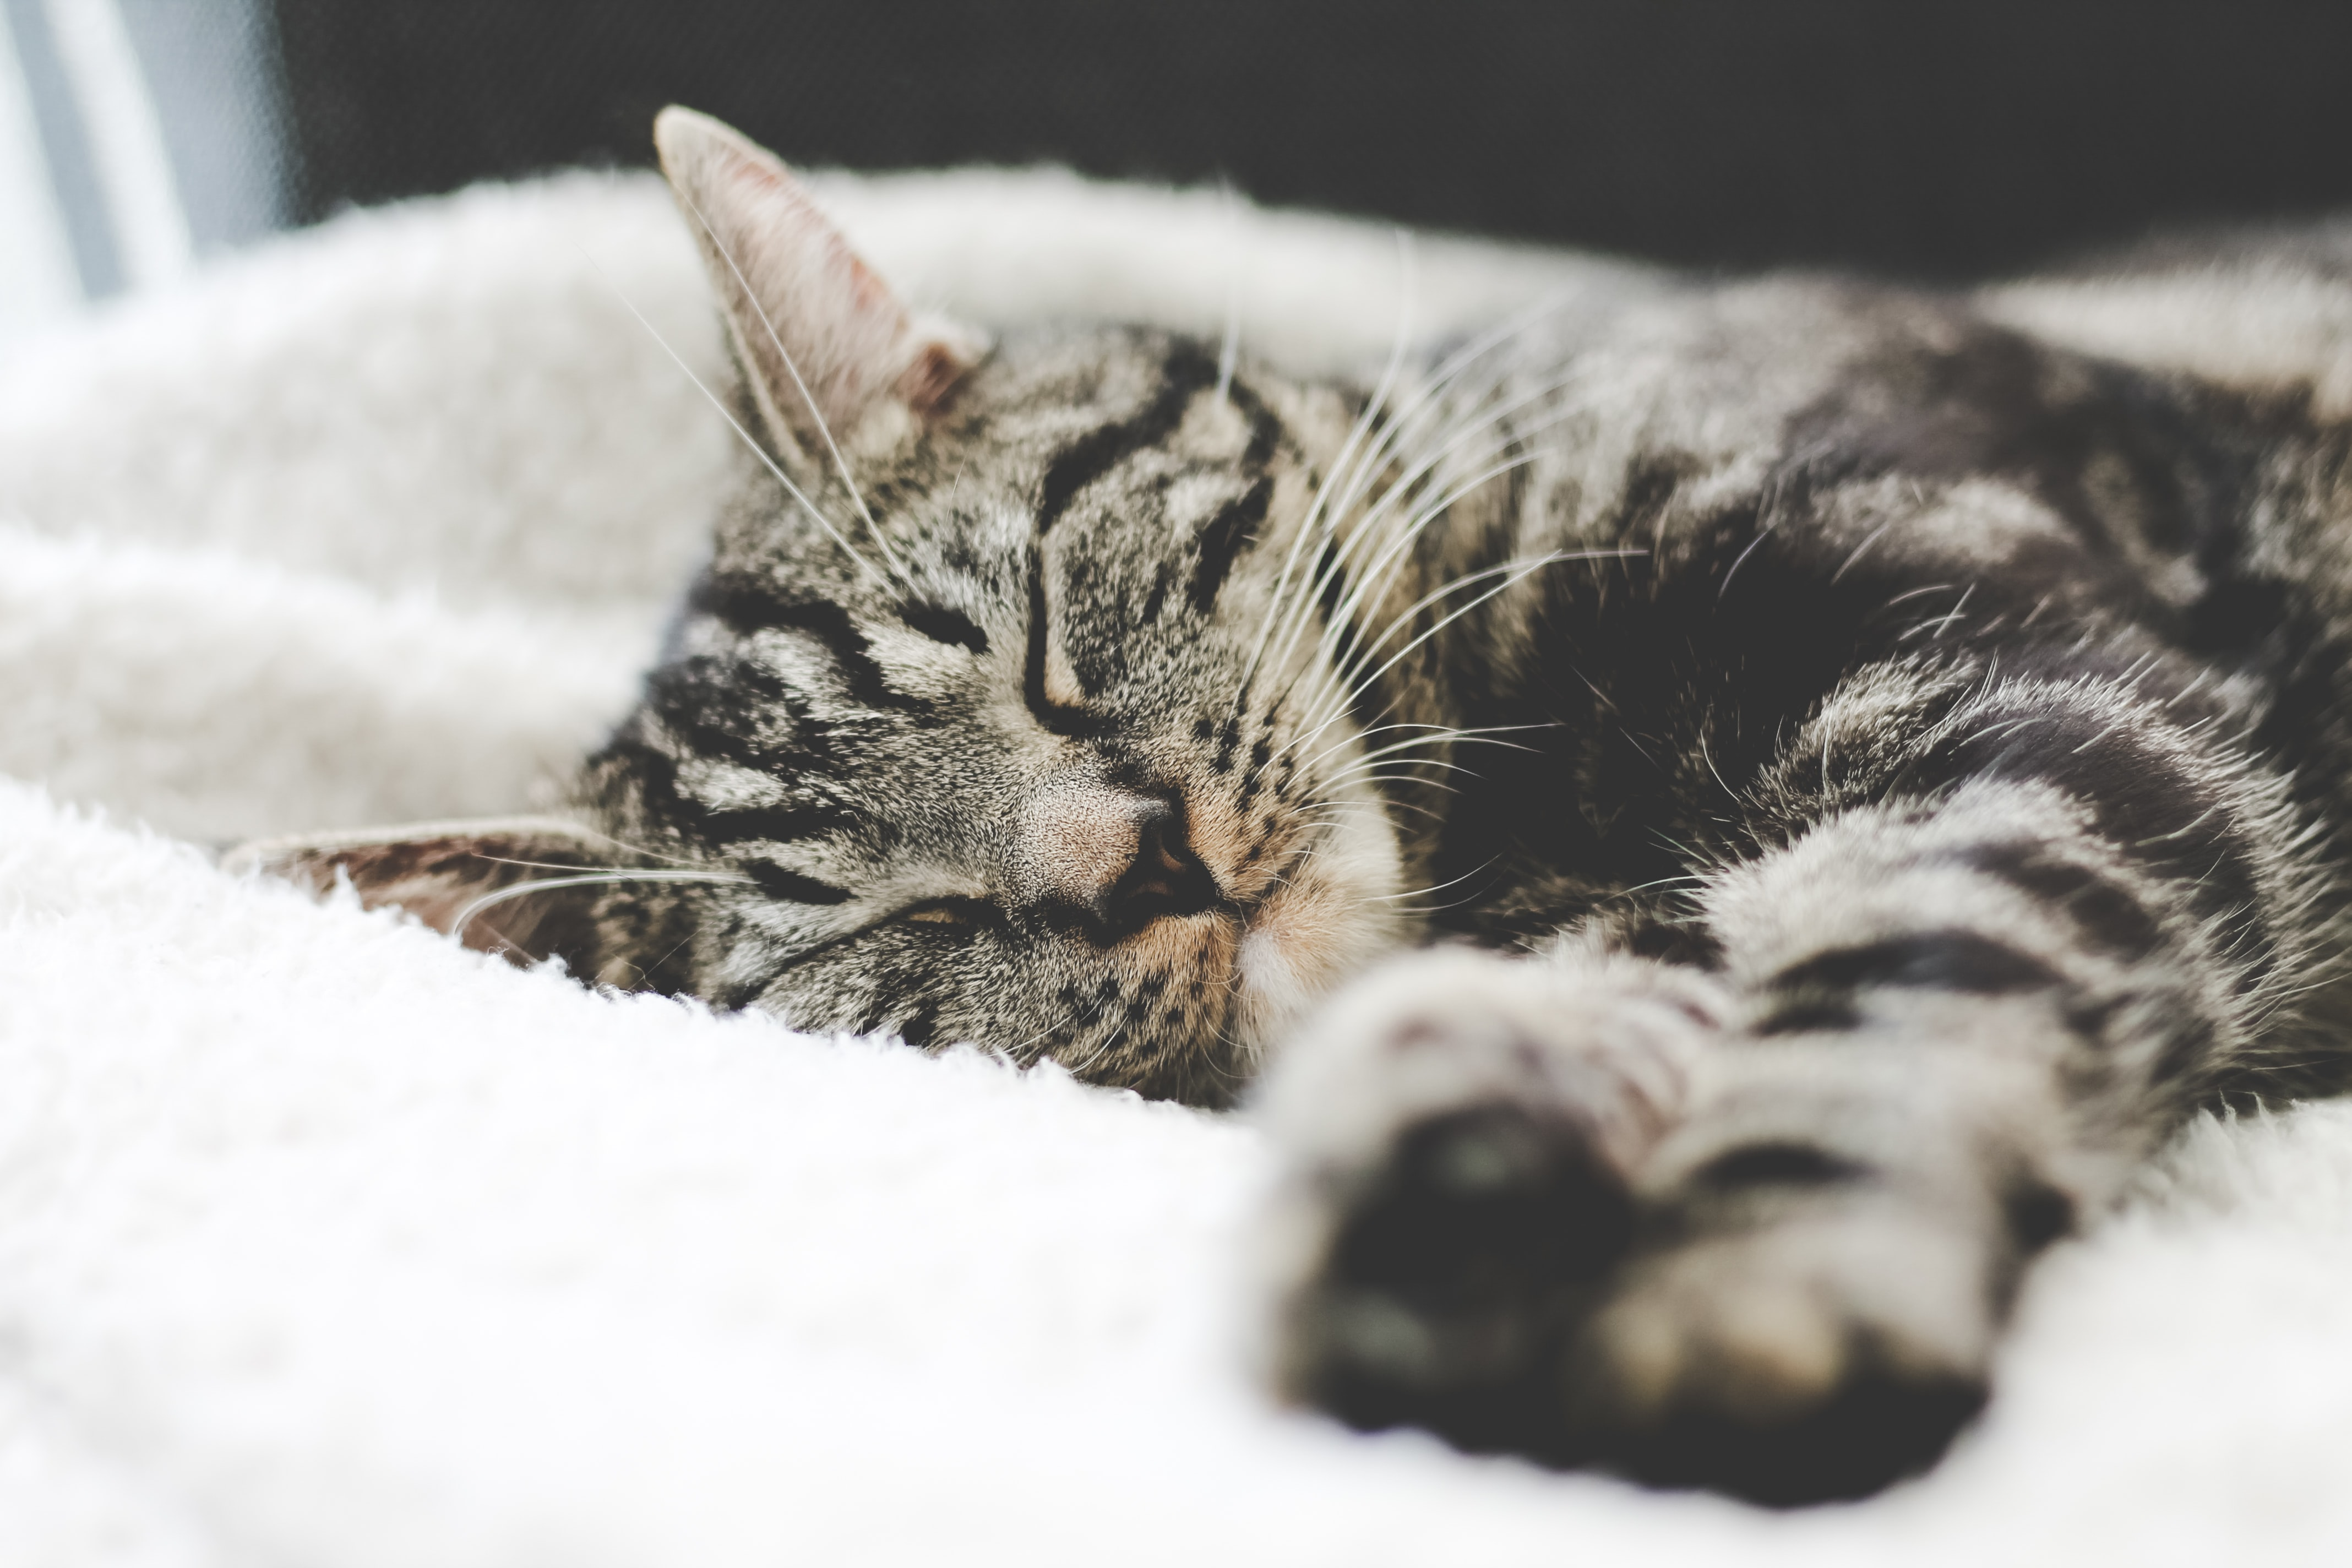 Close-up of a tabby cat sleeping on a white blanket